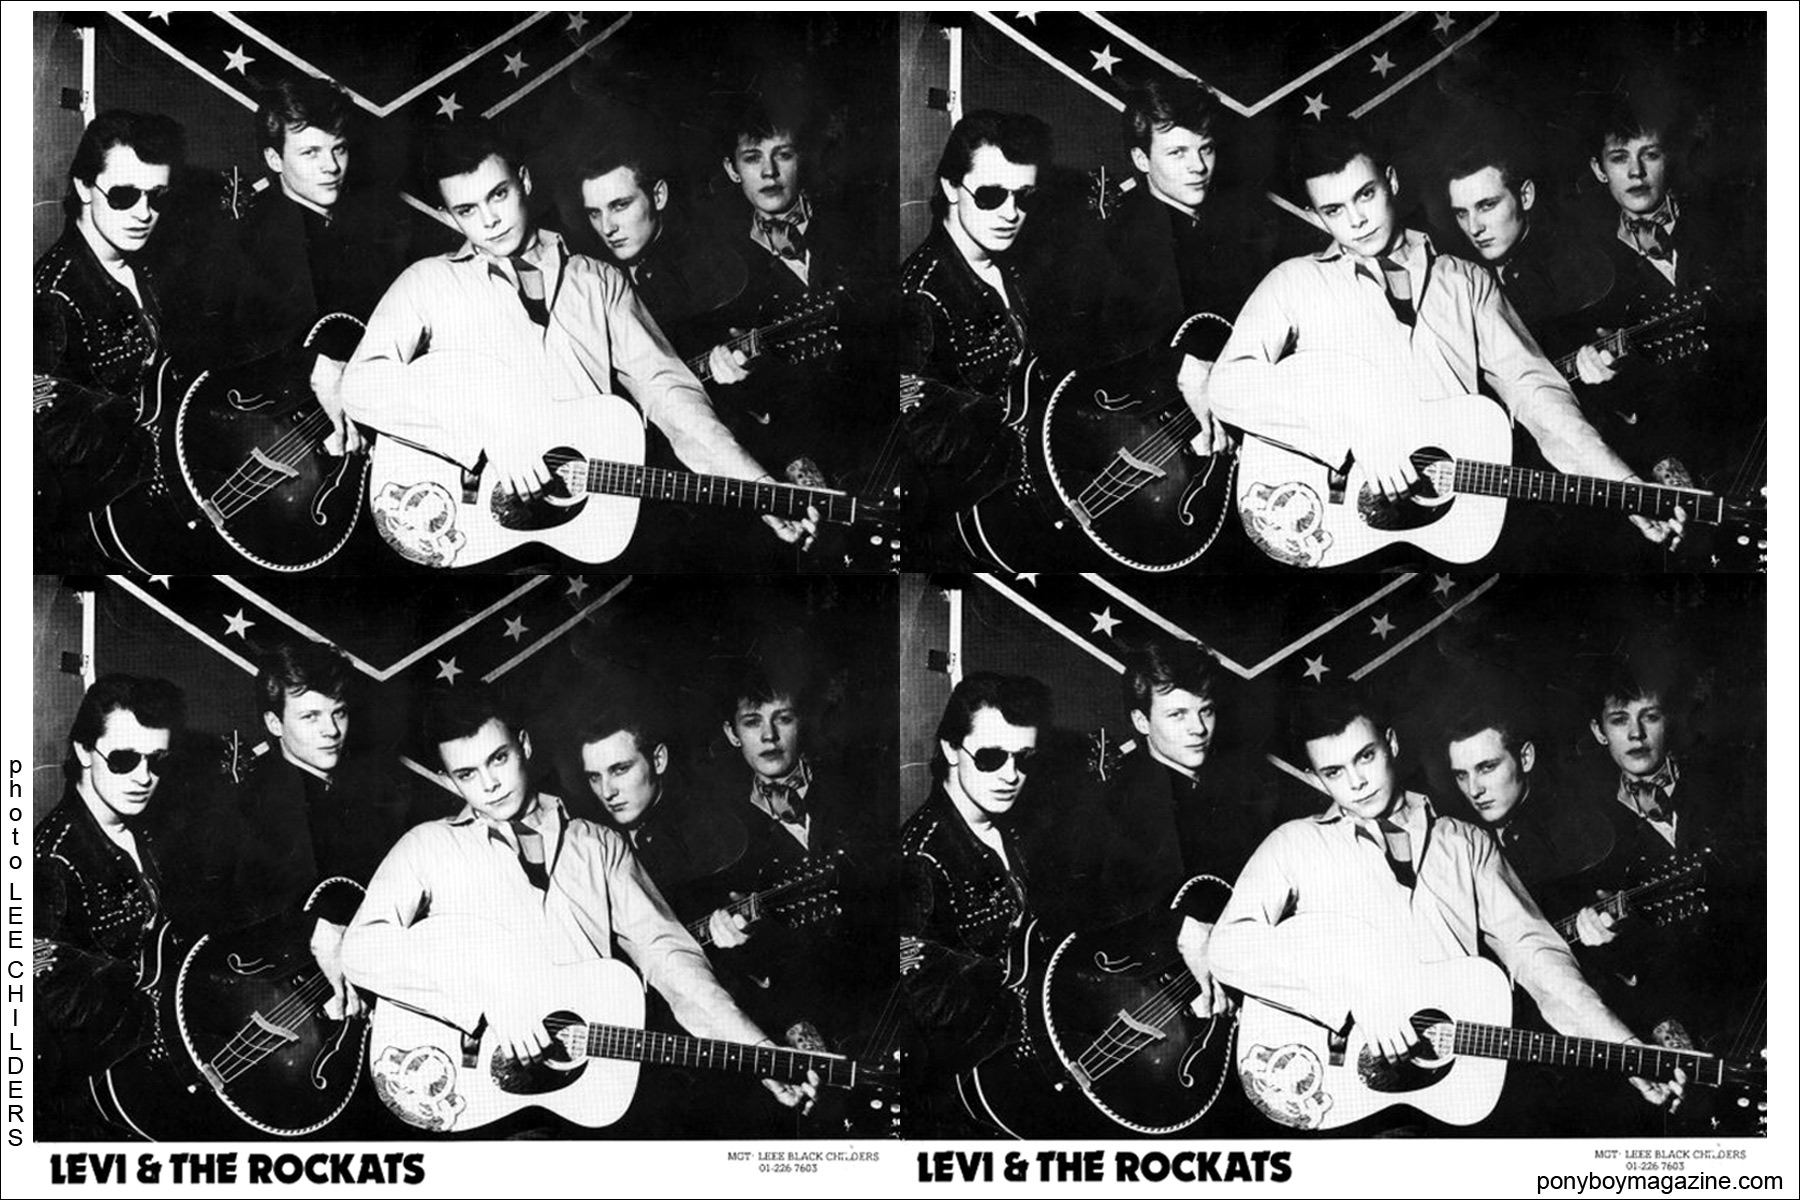 B&W band photo of Levi & The Rockats by Lee Childers, Ponyboy Magazine.